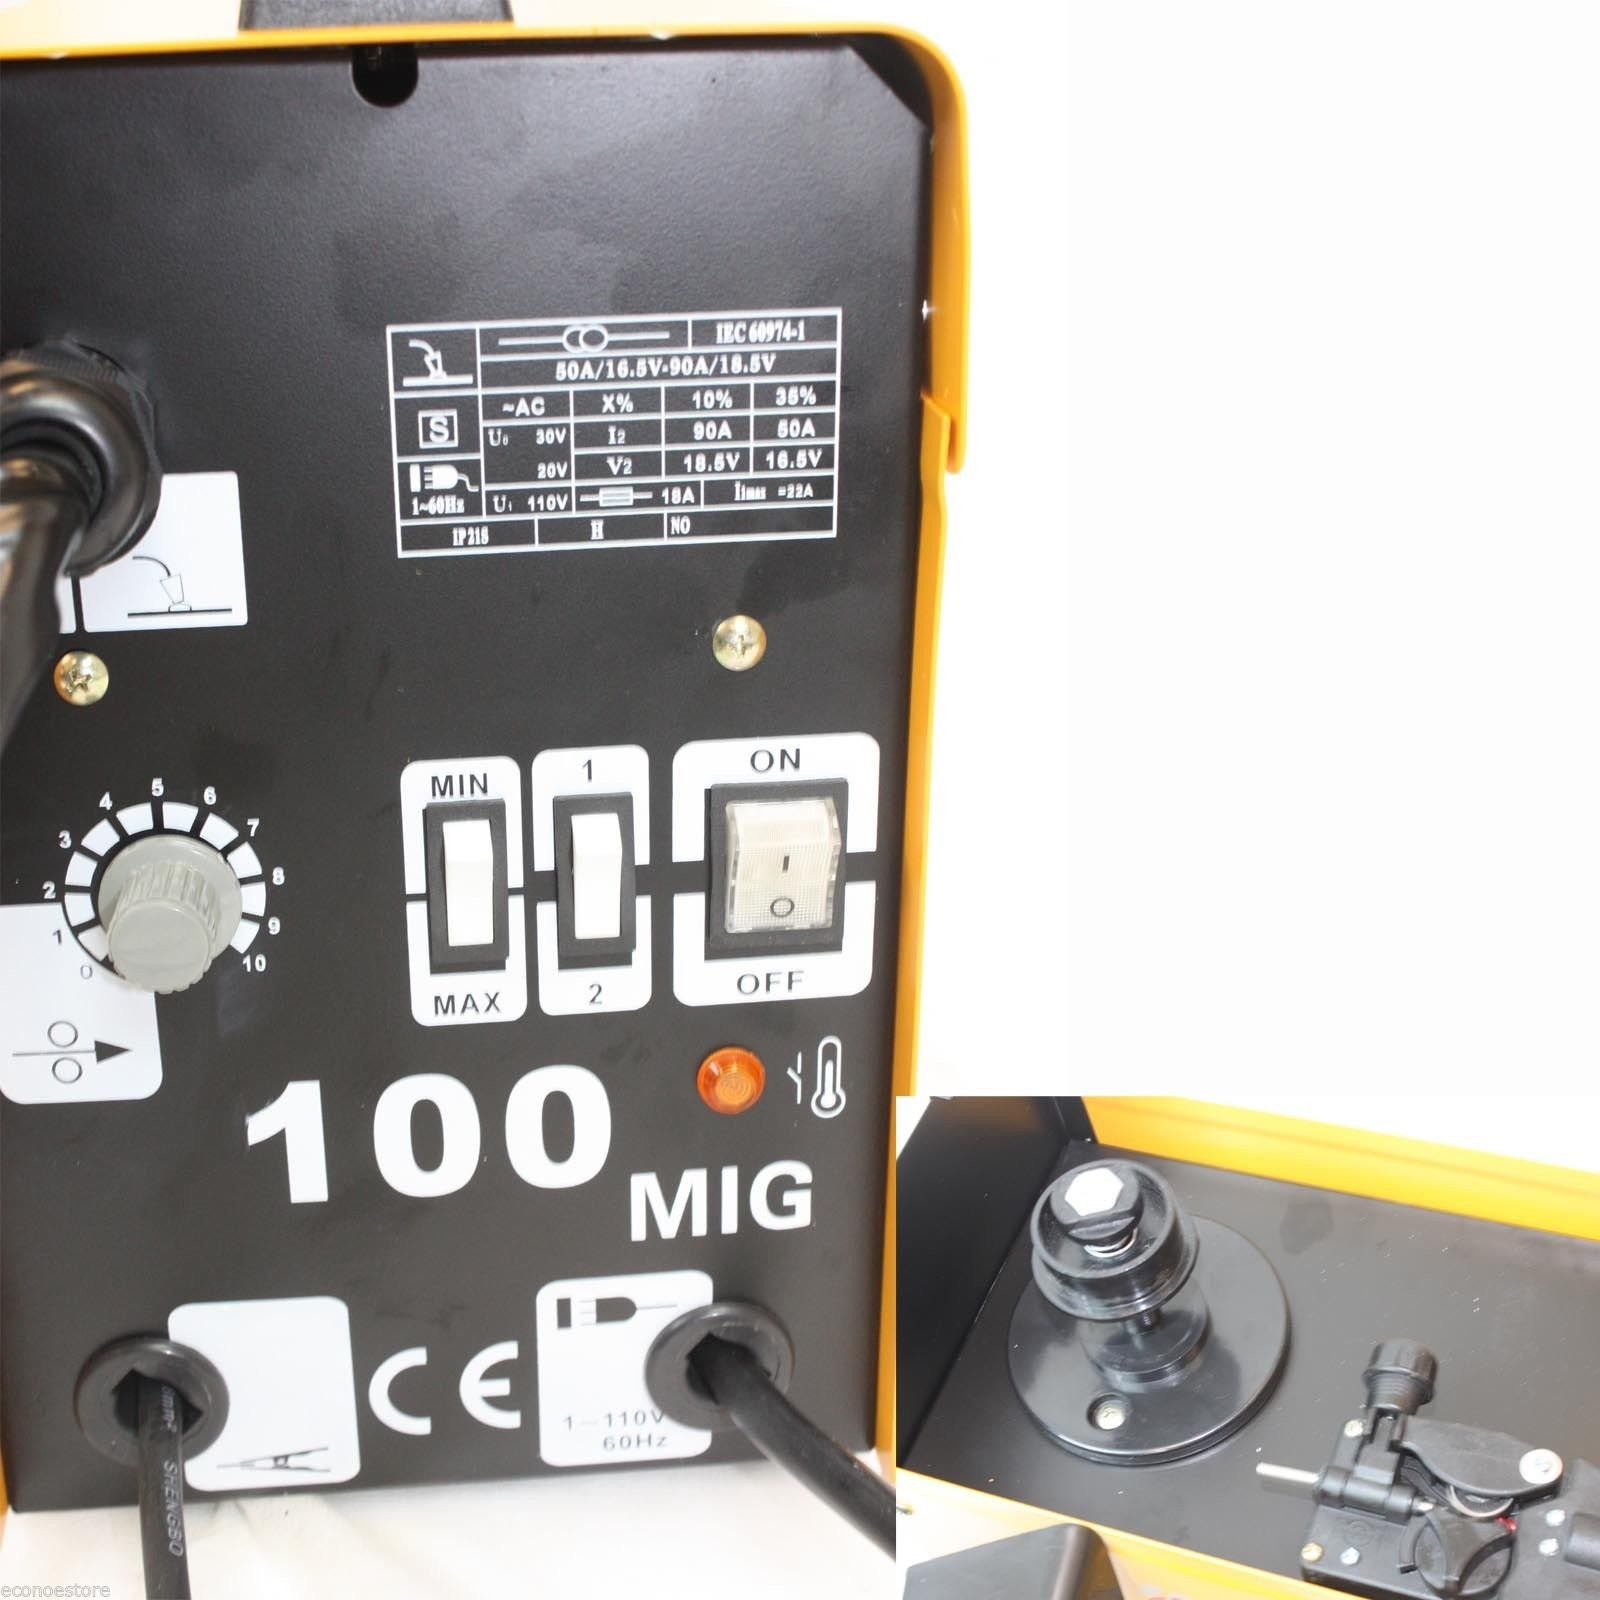 220V MIG100 Gas-Less Flux Core Welder 90 AMP Variable Wire Feed Welding Machine by I_S IMPORT (Image #2)